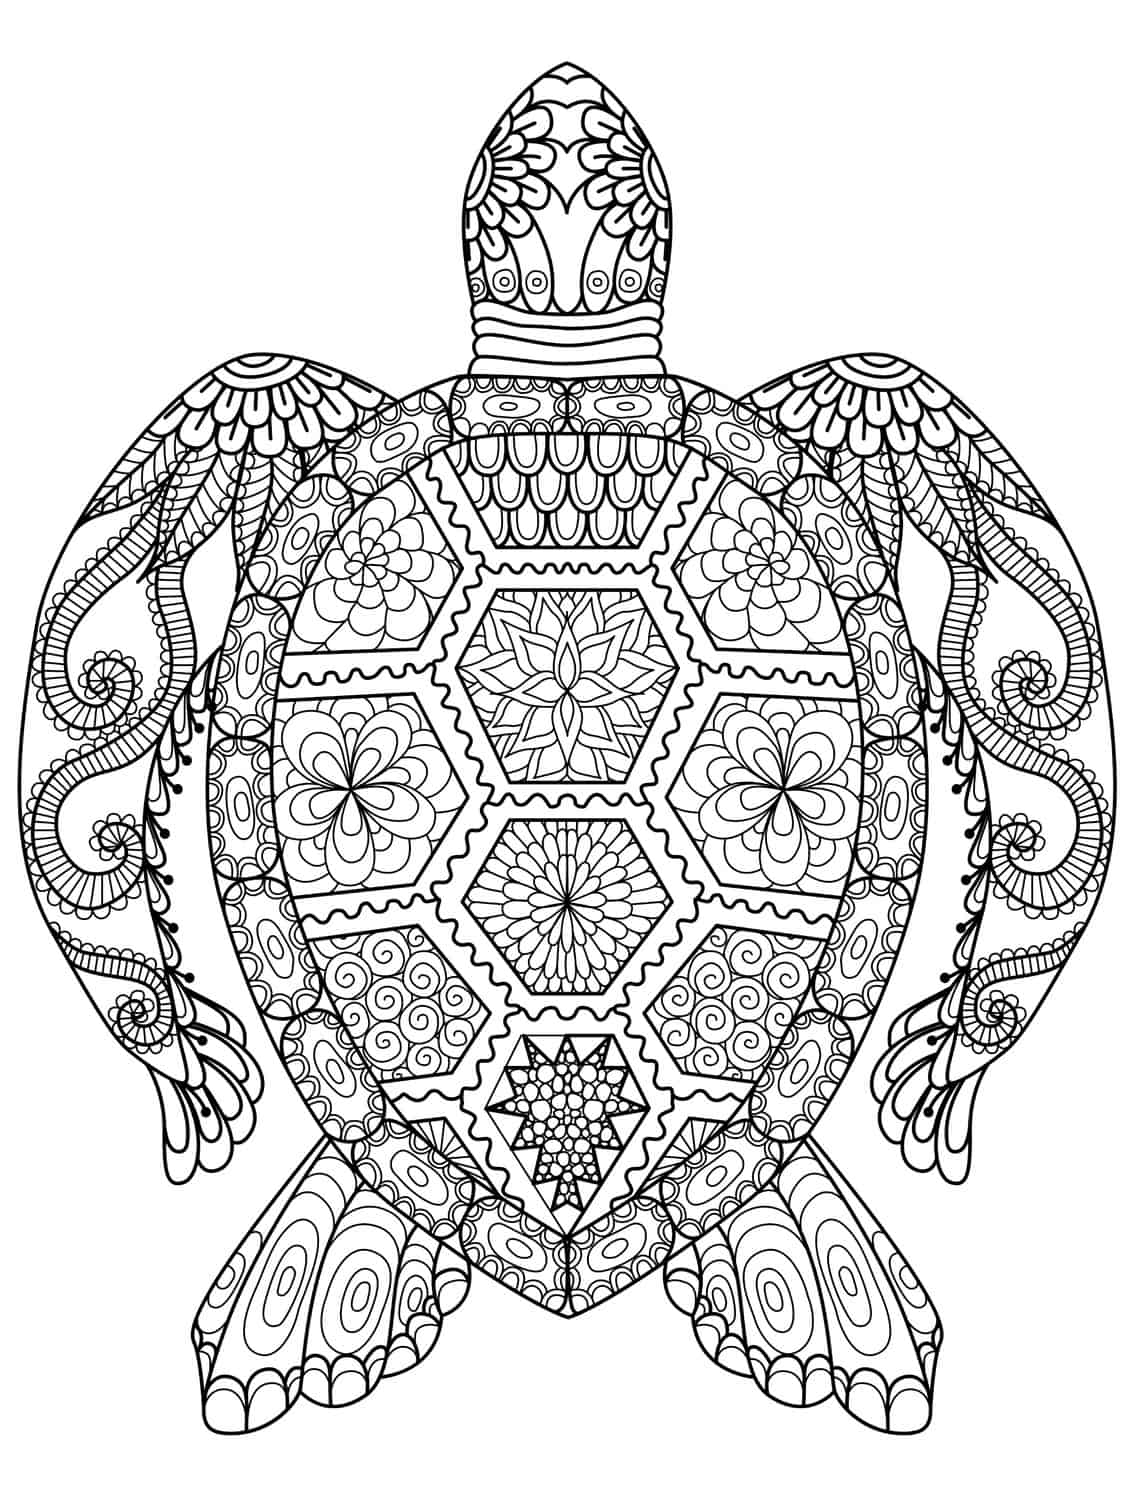 coloring sheet for adults difficult coloring pages for adults free printable adults coloring for sheet